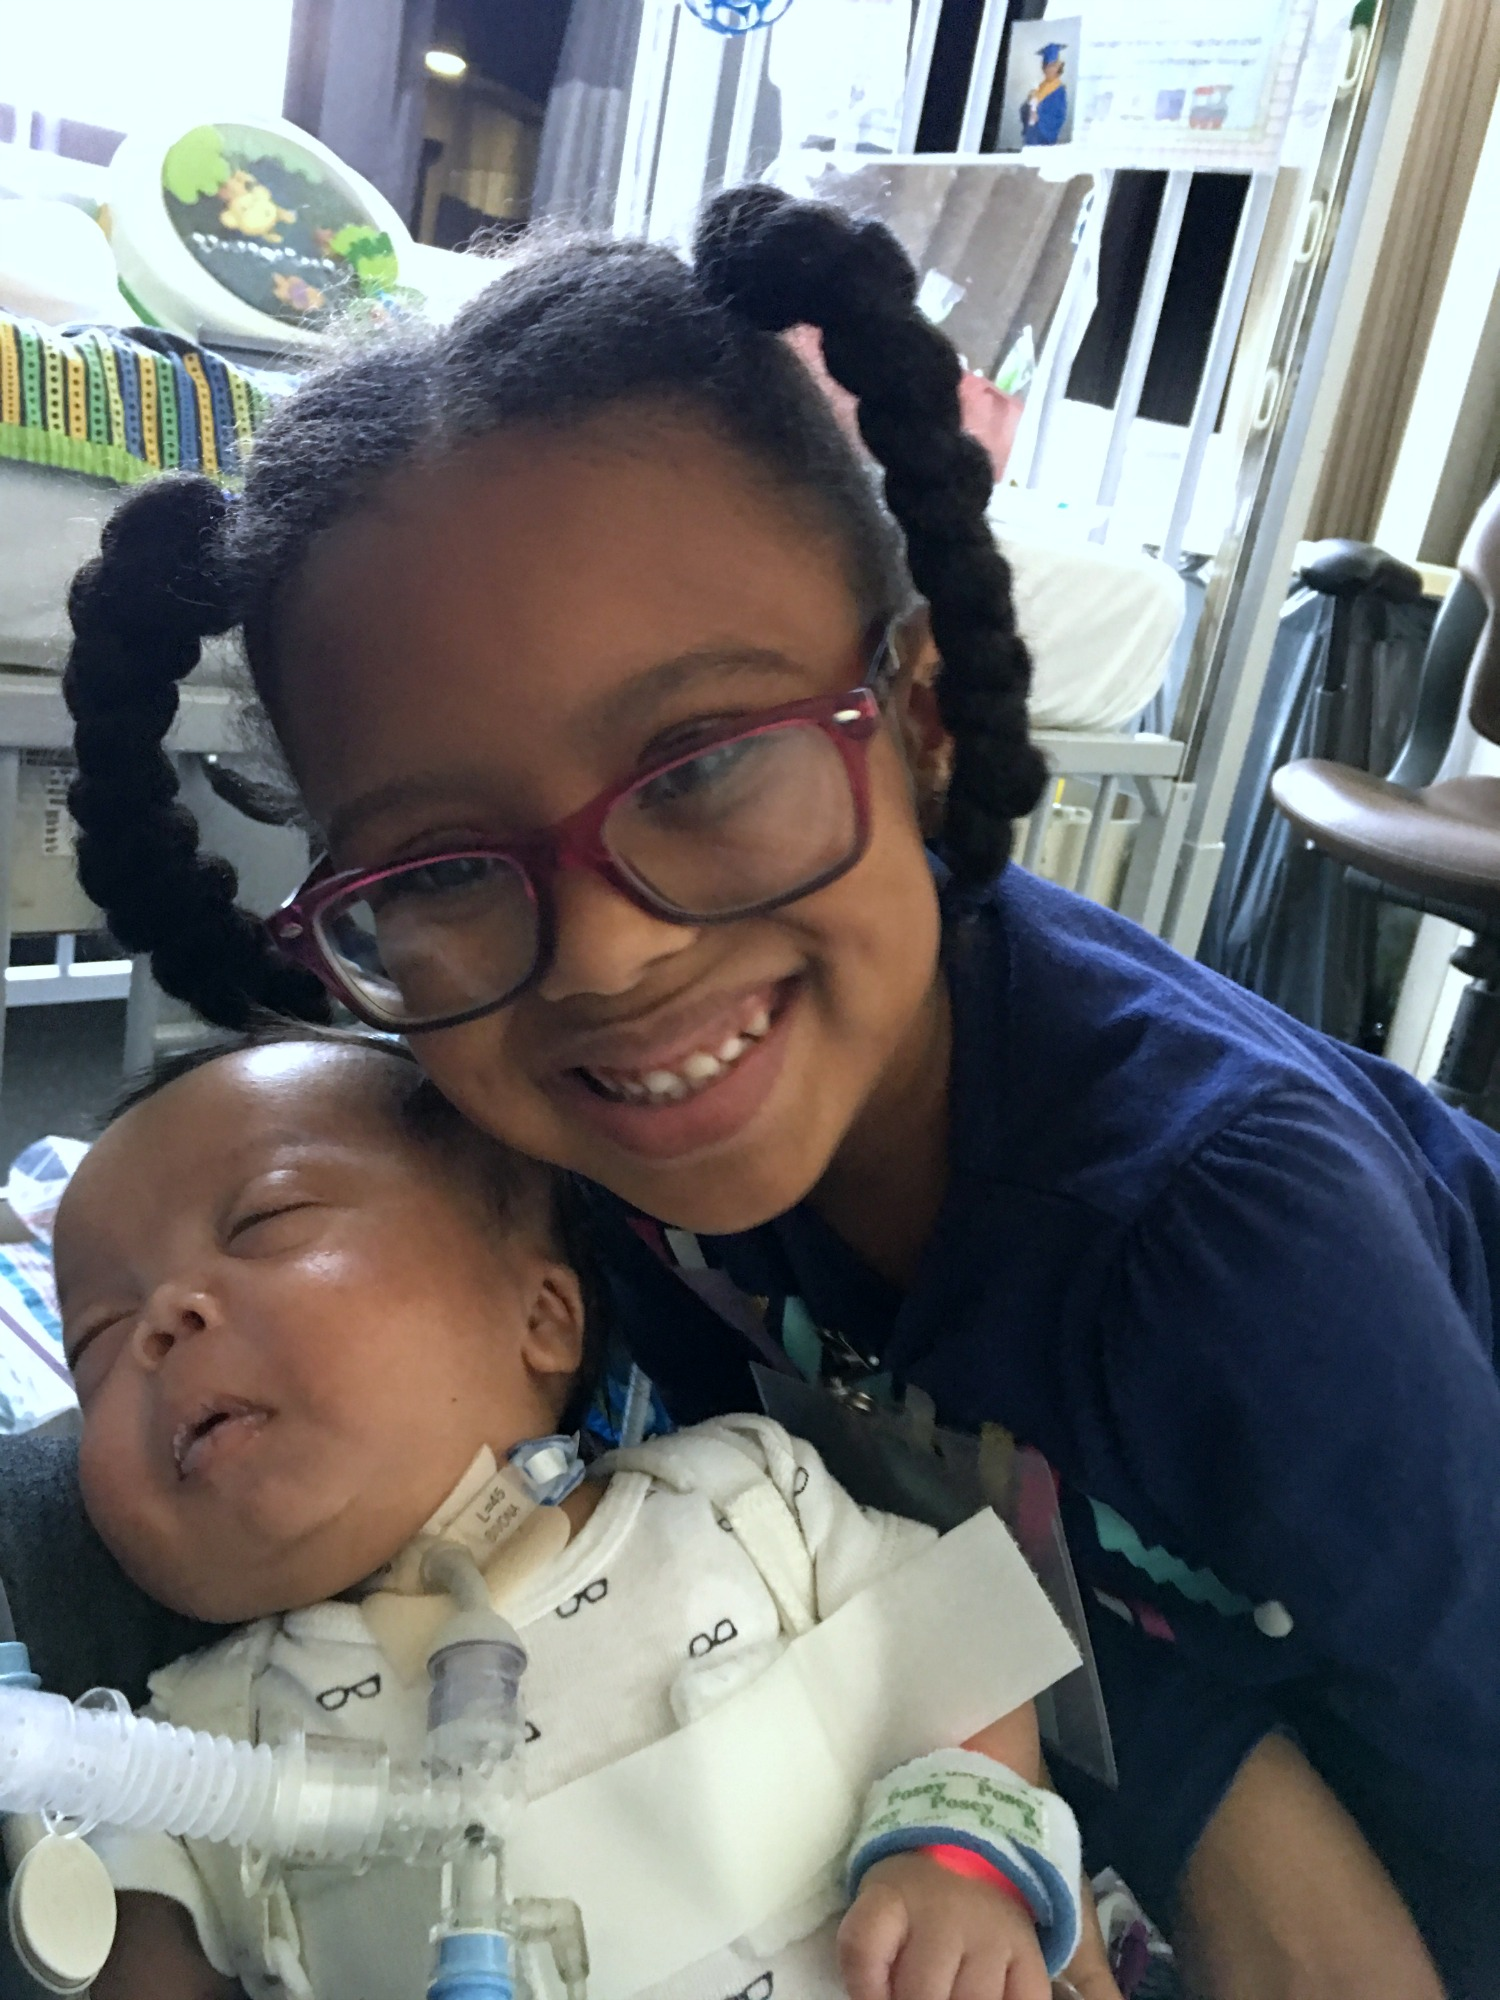 5 Things No One Tells You About Being a NICU Mom - Bianca Dottin